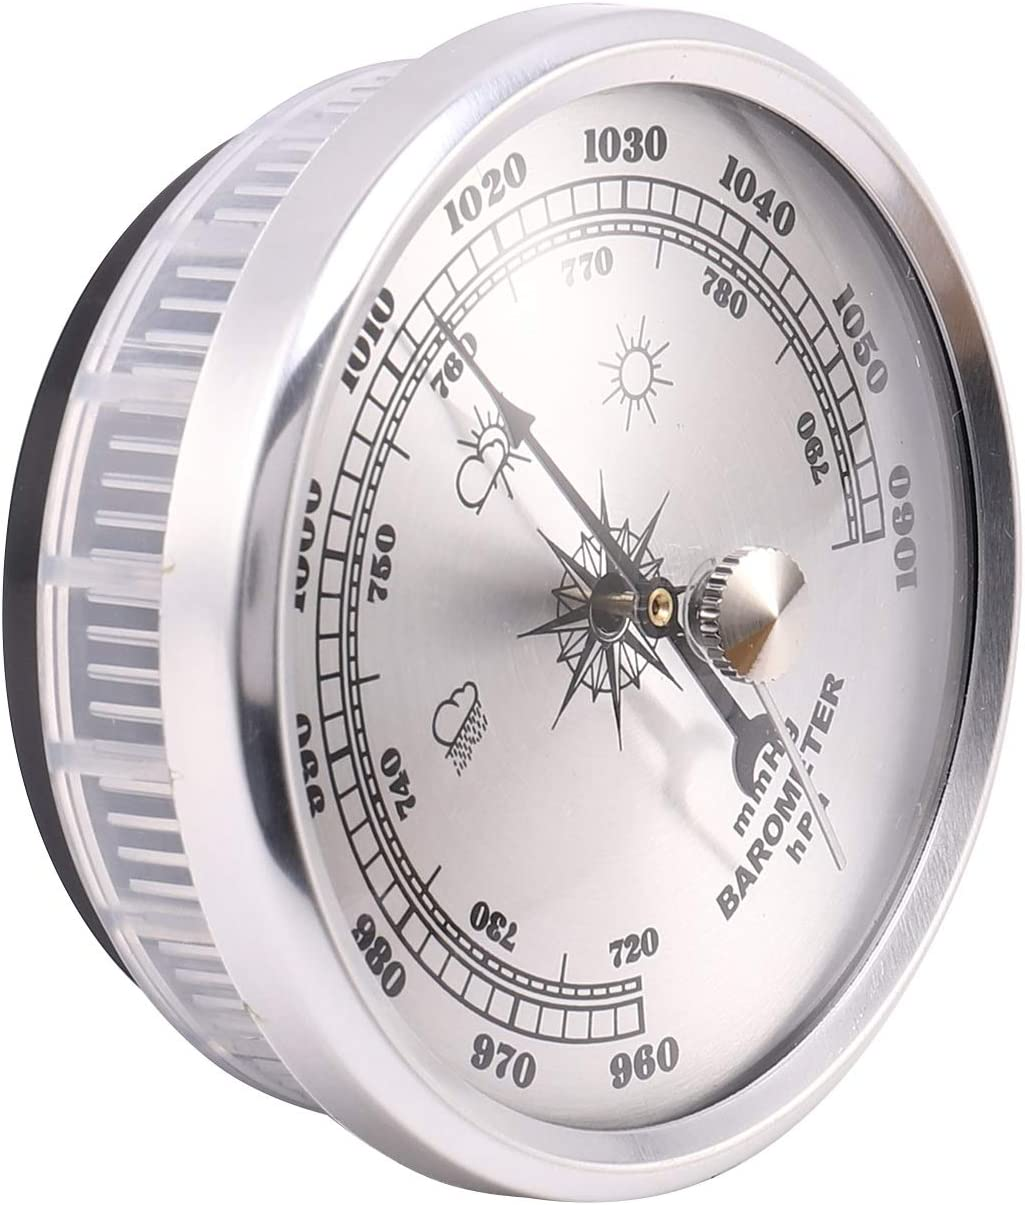 SODIAL f/ür Haus Manometer Wetter Station Metall Wand Behang Barometer Atmosph?Risches Multifunktions Thermometer Hygrometer Tragbar